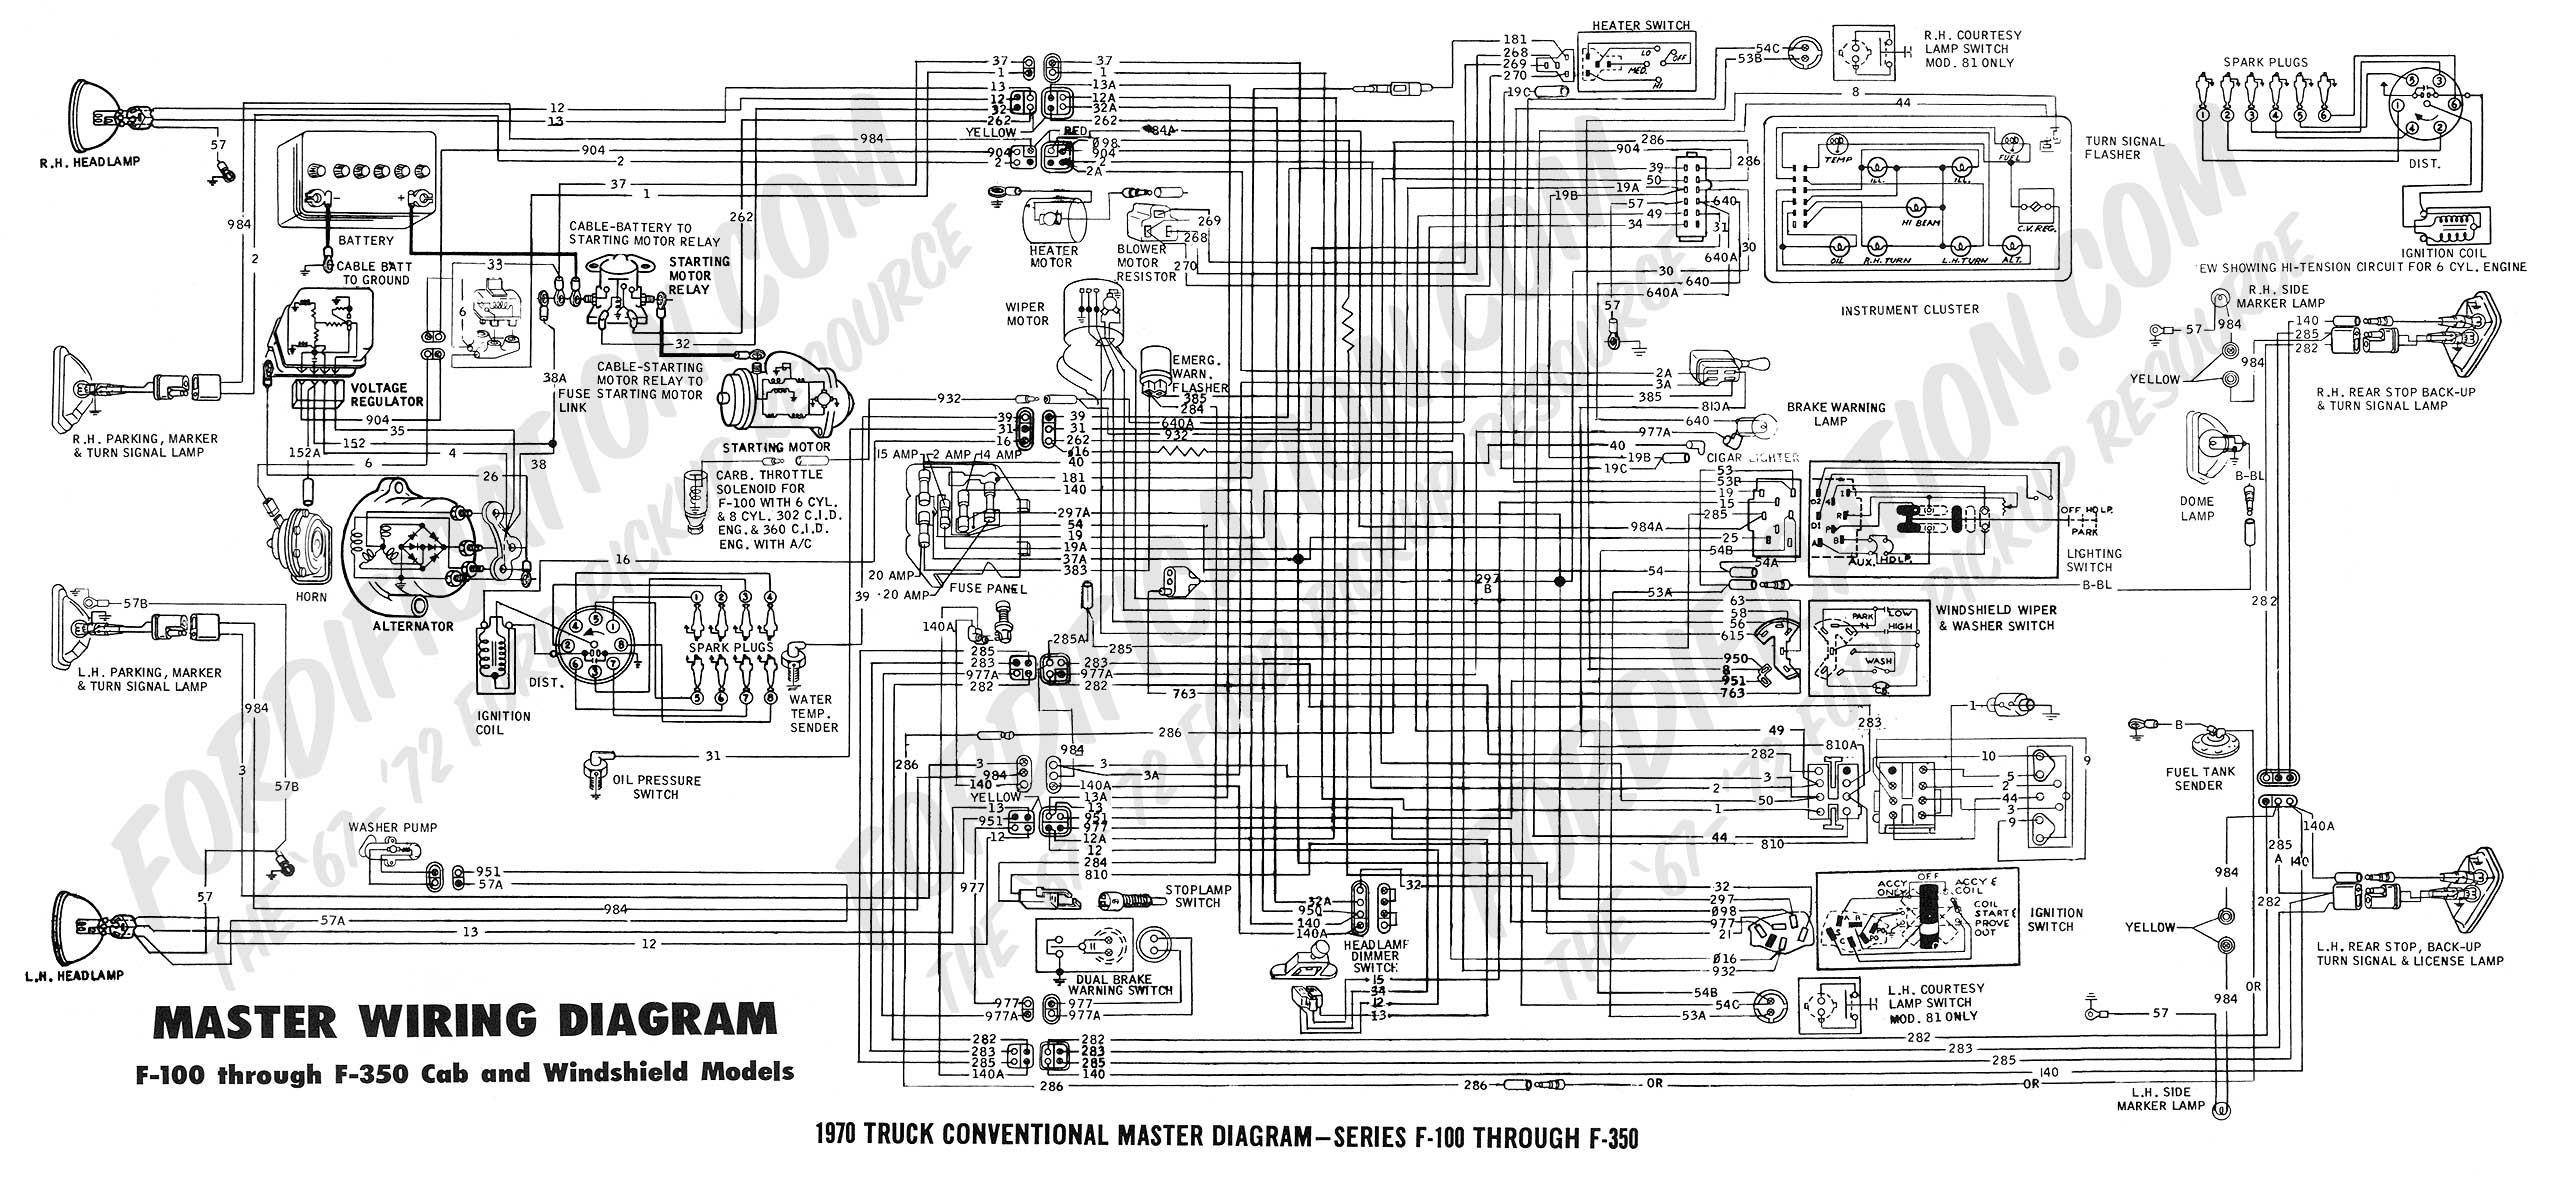 wiring diagram 70_master ford truck technical drawings and schematics section h wiring old ford wiring harness at bakdesigns.co